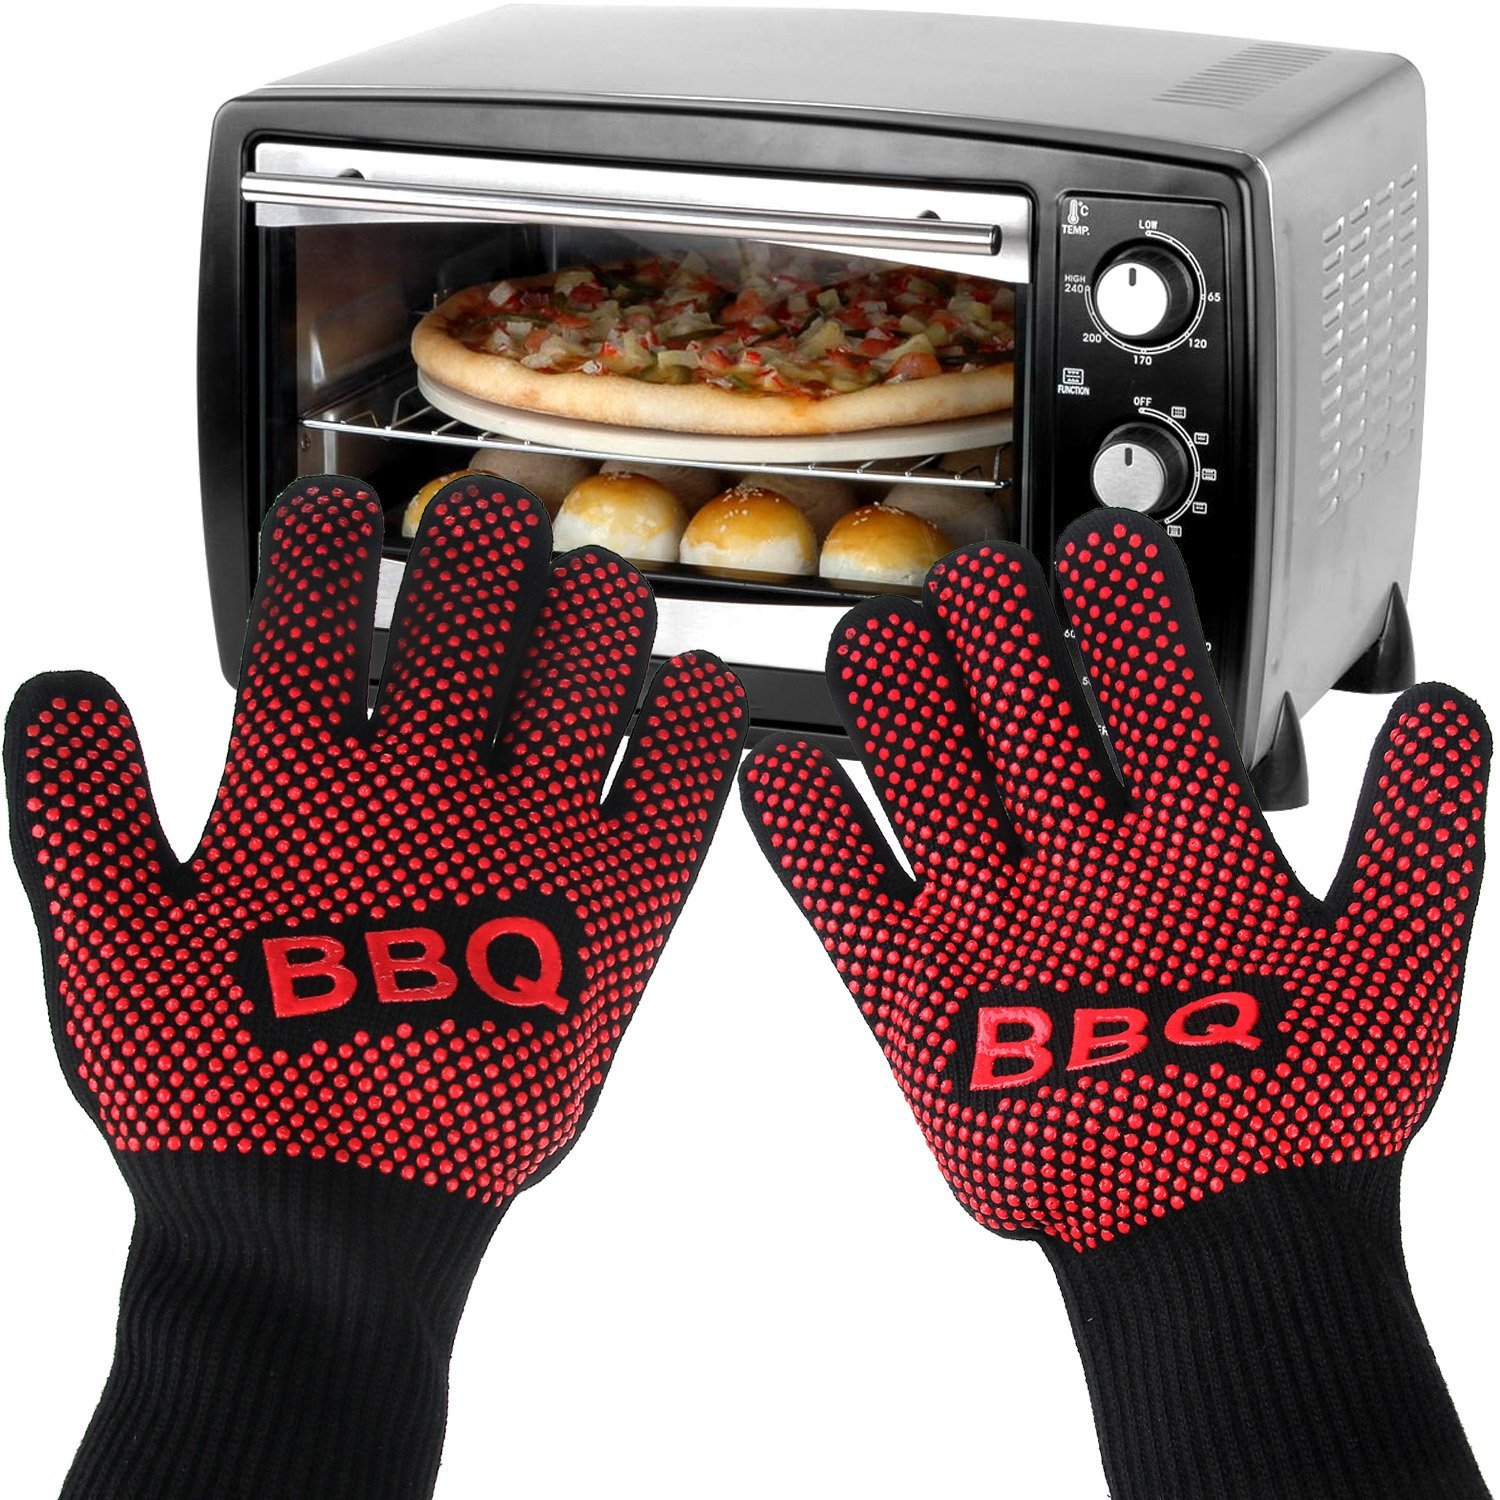 Top 10 Best Heat Resistant Gloves for BBQ Grill & Oven Gloves In 2020 Reviews